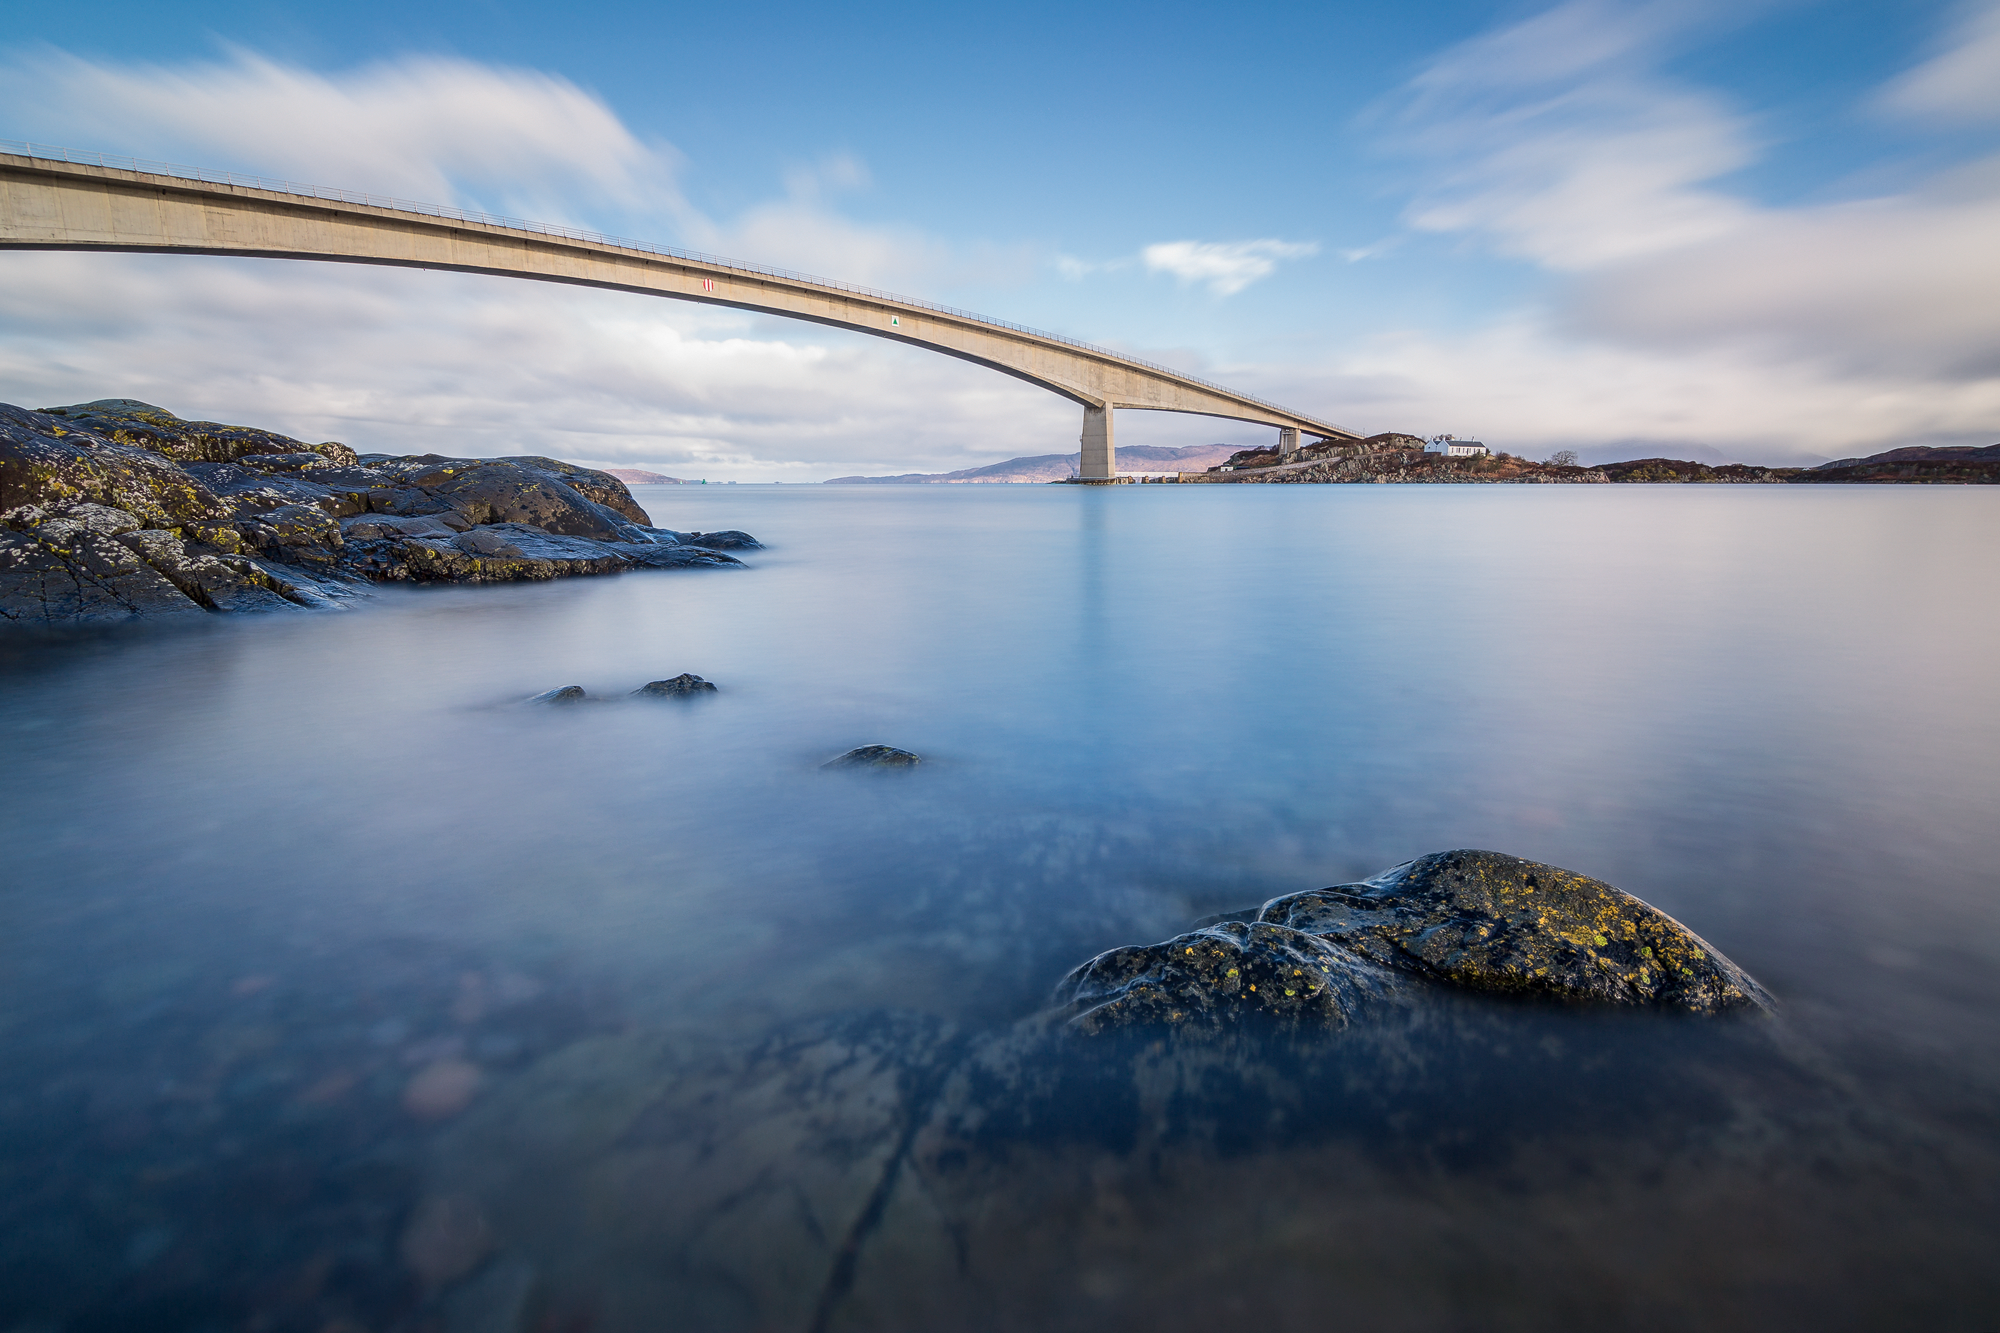 Skye Bridge, United Kingdom